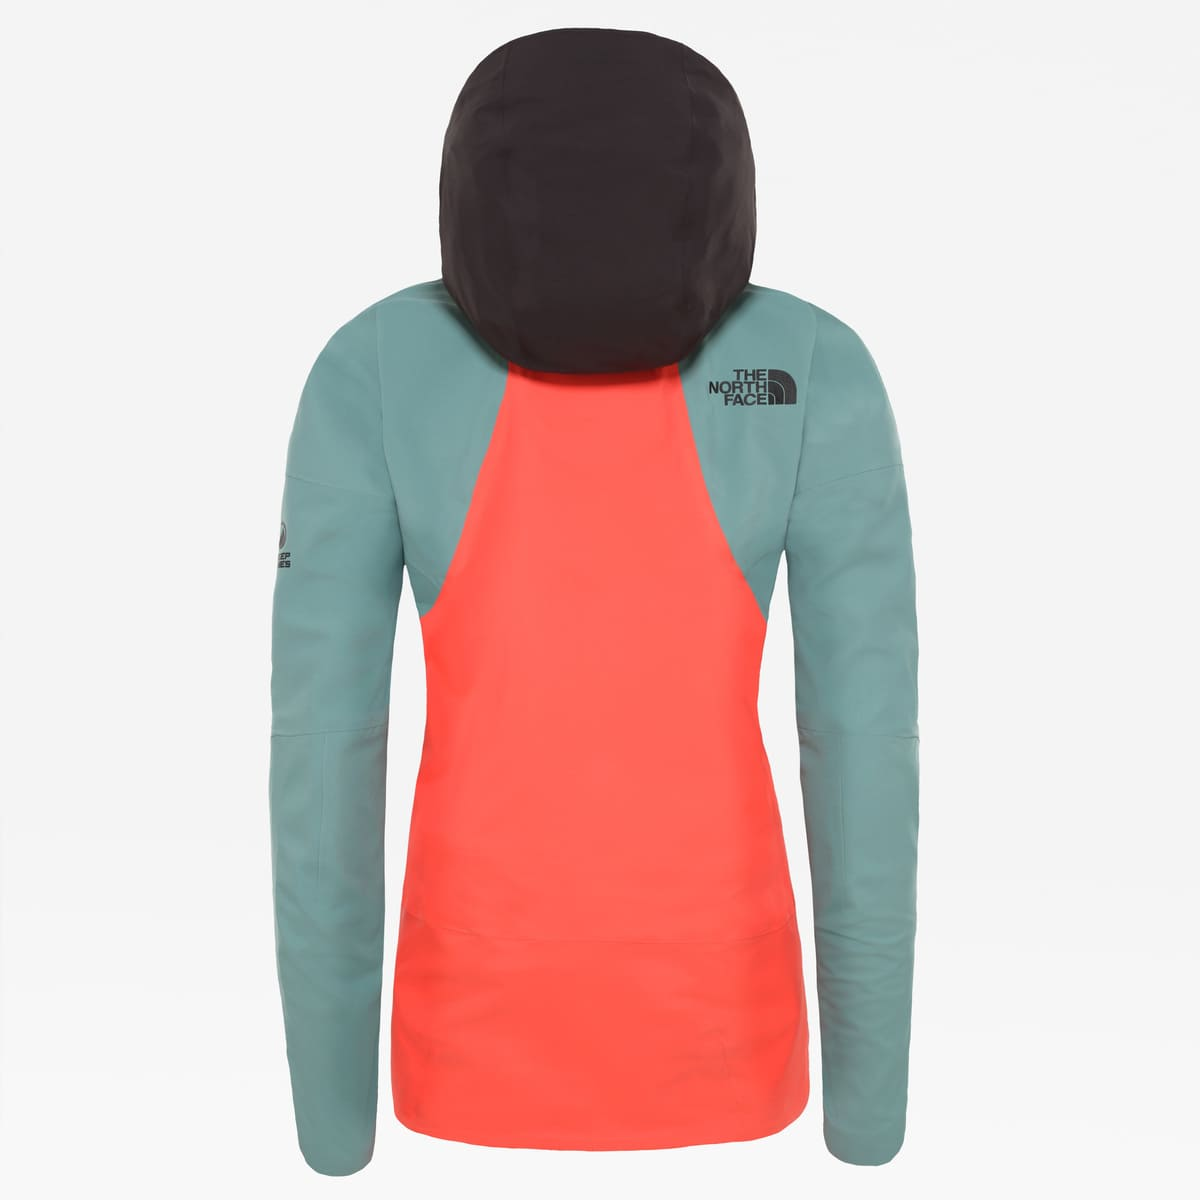 A-CAD Jacke Women - Back | The North Face Futurelight